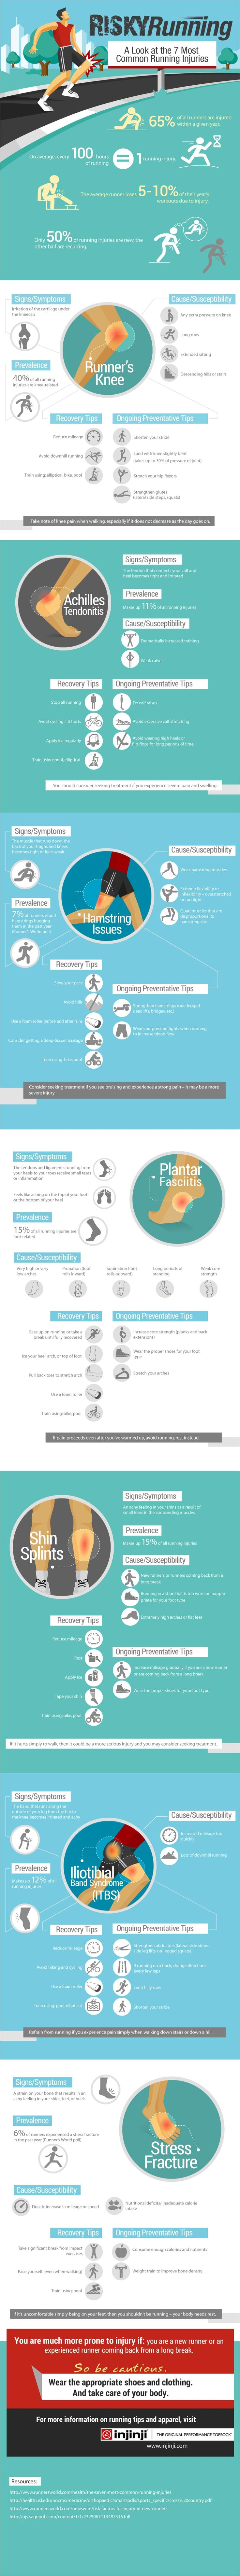 Risky Running: A Look at the 7 Most Common Running Injuries (one of the best infographs I've seen)